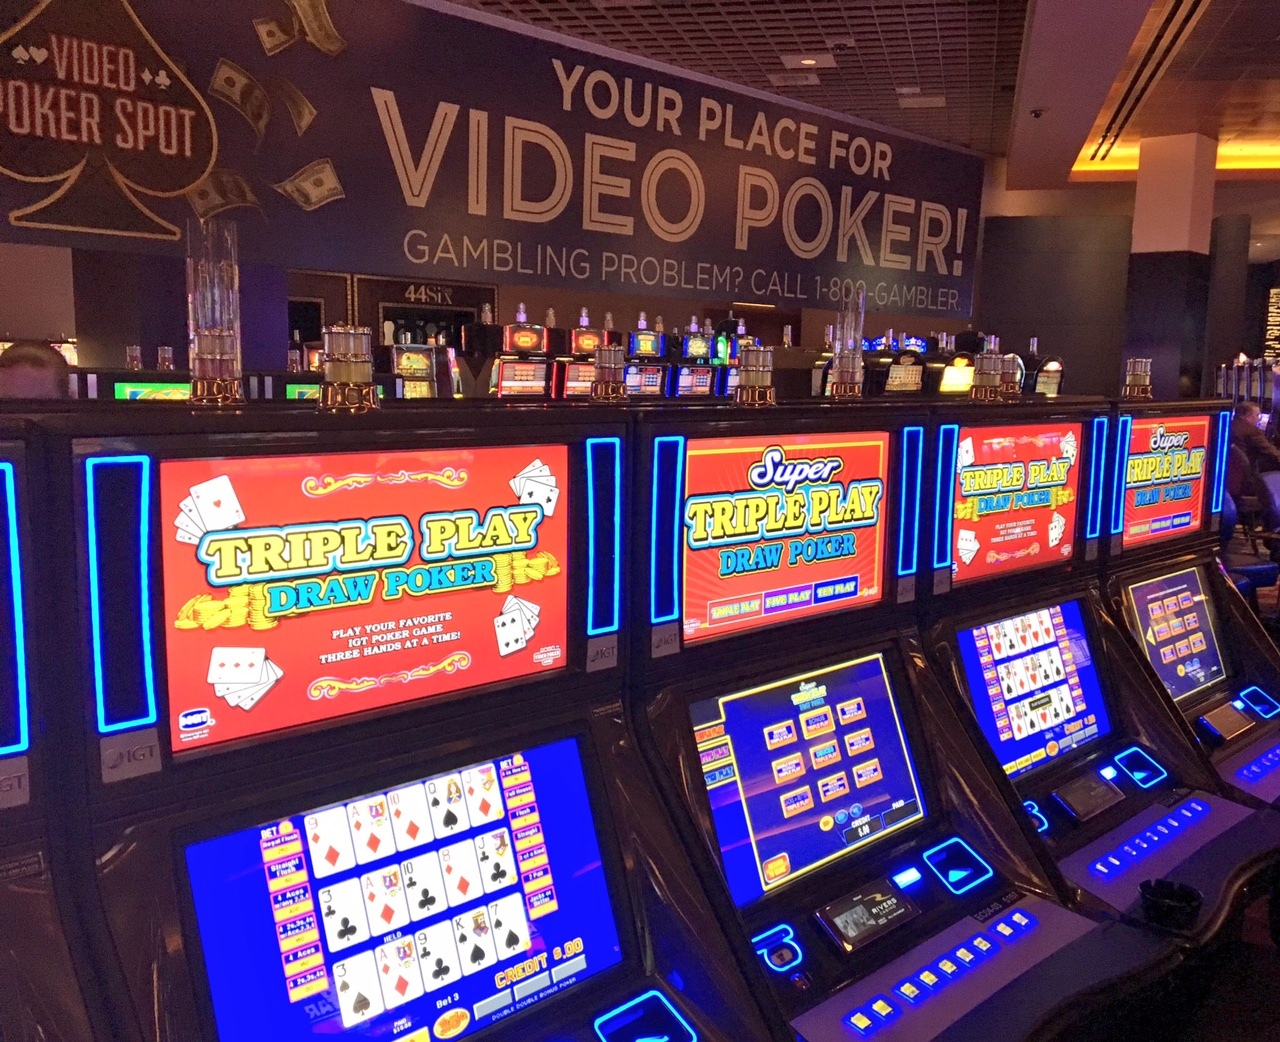 Nevada wedding and gambling centre